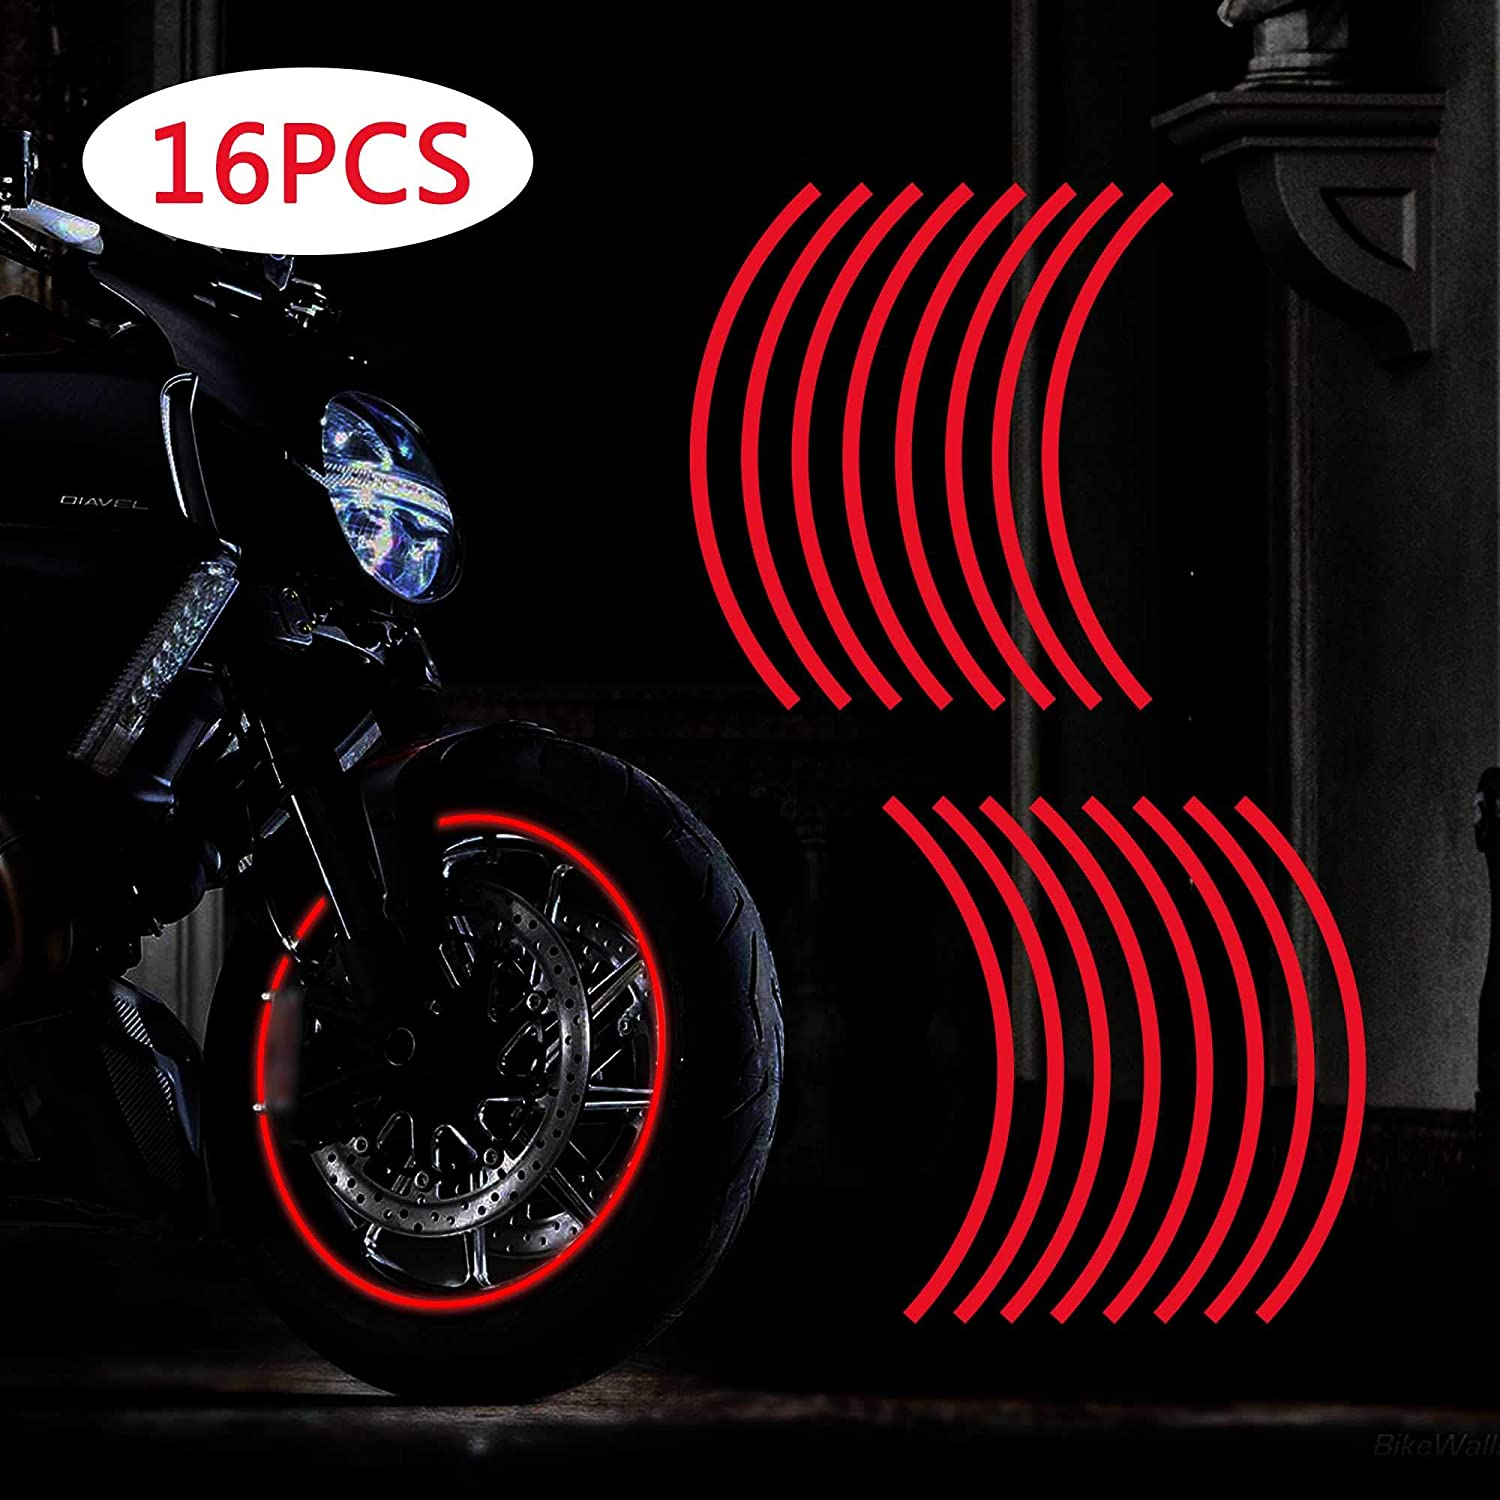 TOMALL 17-19 Reflective Wheel Rim Stripe Decal for Motorcycle Wheels Car Cycling Bike Bicycle Night Reflective Safety Decoration Stripe Universal Rim Reflective Stickers Blue